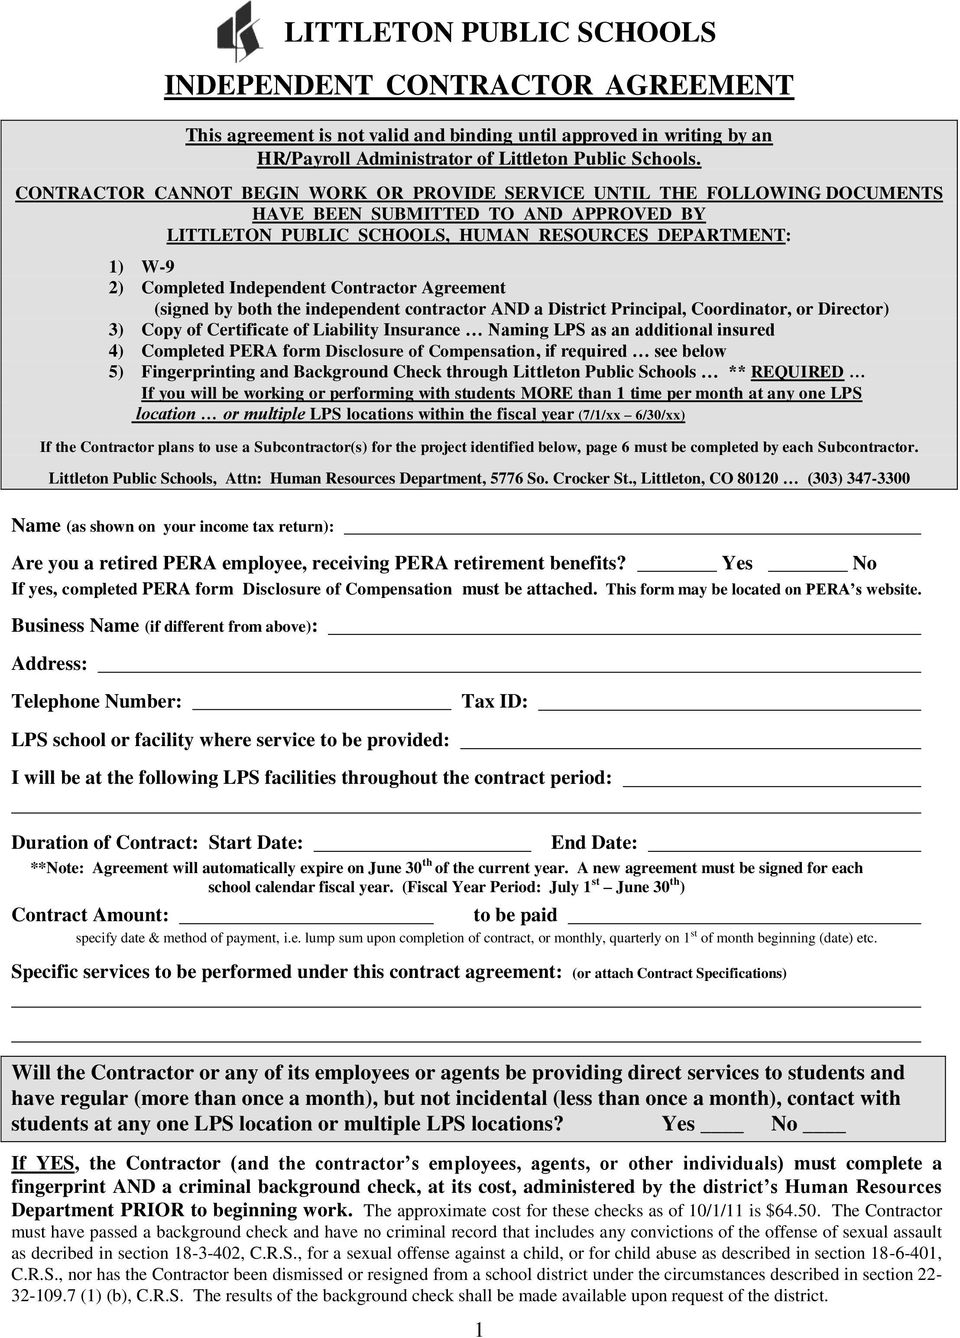 Independent Contractor Agreement (signed by both the independent contractor AND a District Principal, Coordinator, or Director) 3) Copy of Certificate of Liability Insurance Naming LPS as an